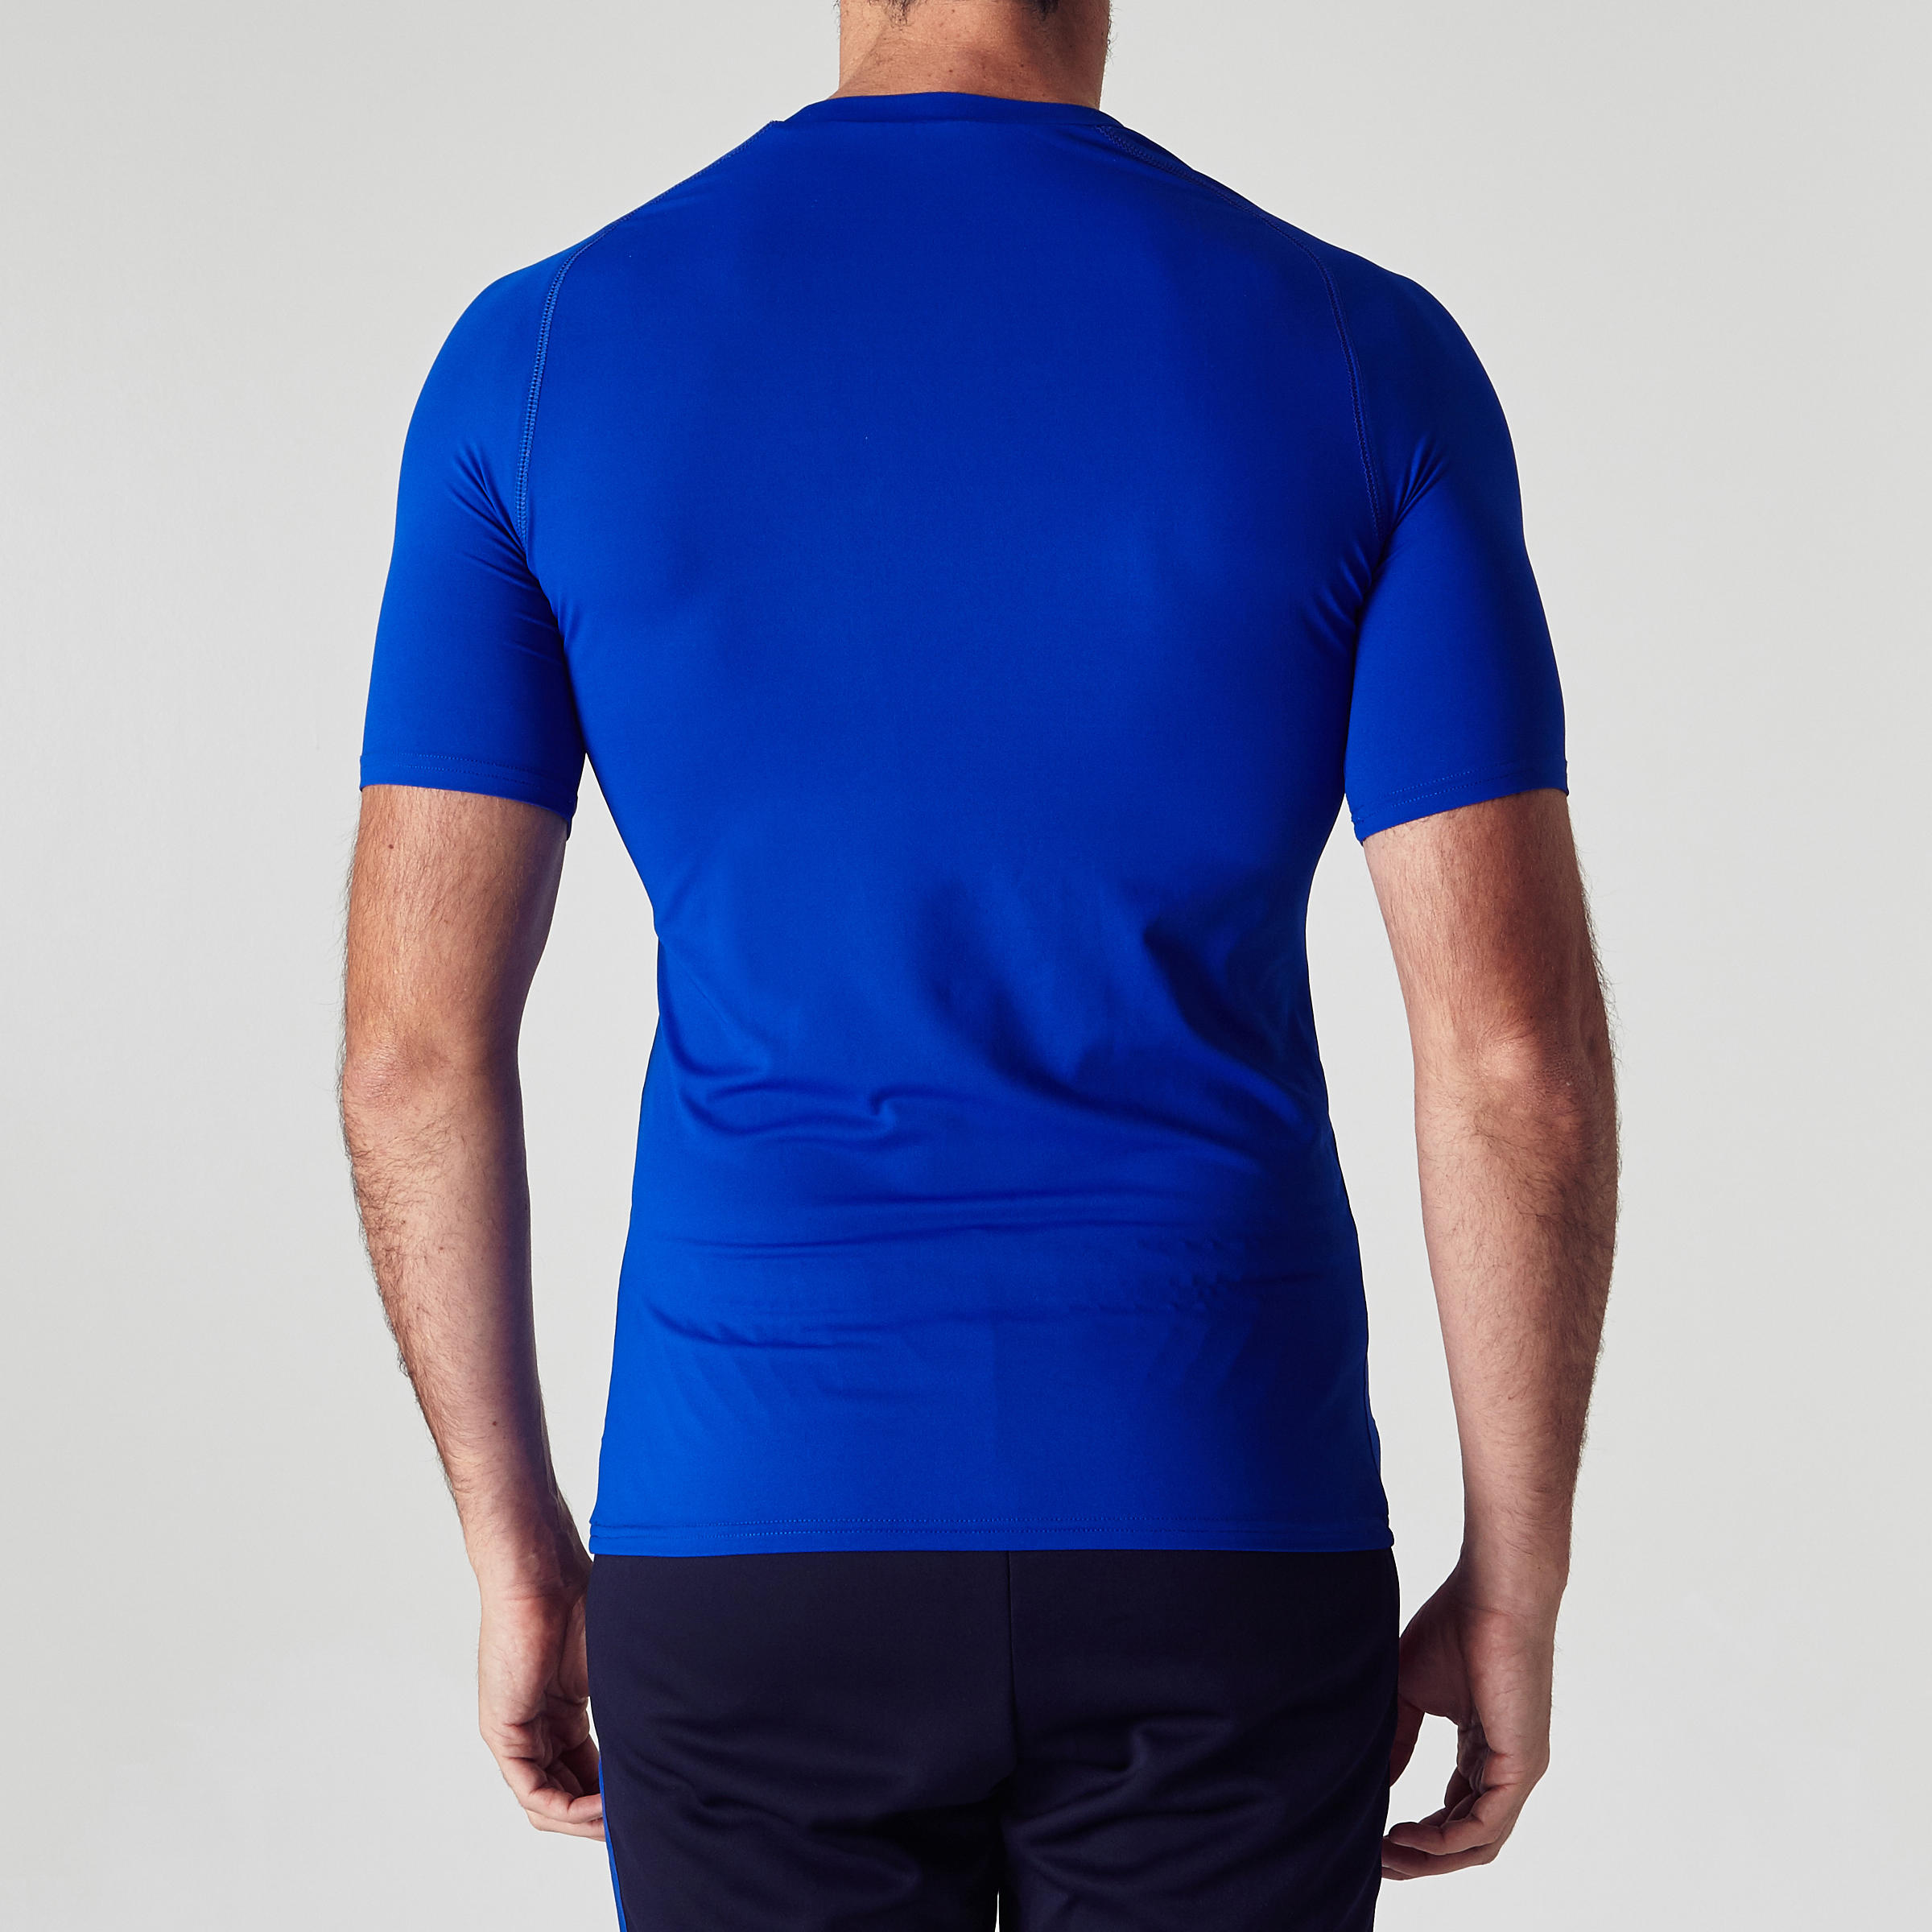 Keepdry 100 Adult Breathable Short-Sleeved Base Layer - Blue